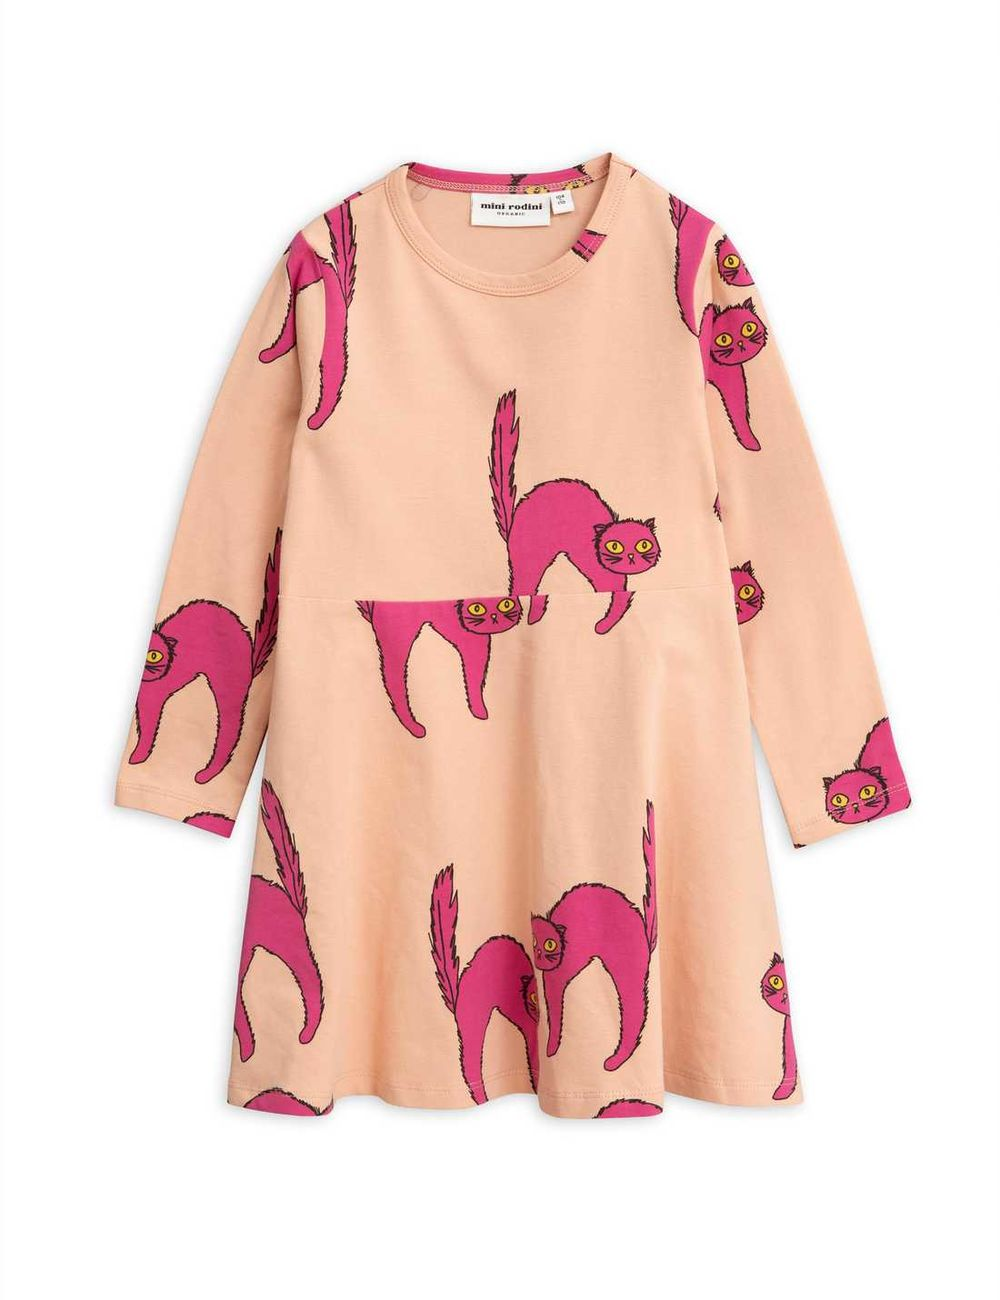 MINI RODINI CATZ LS DRESS, PINK